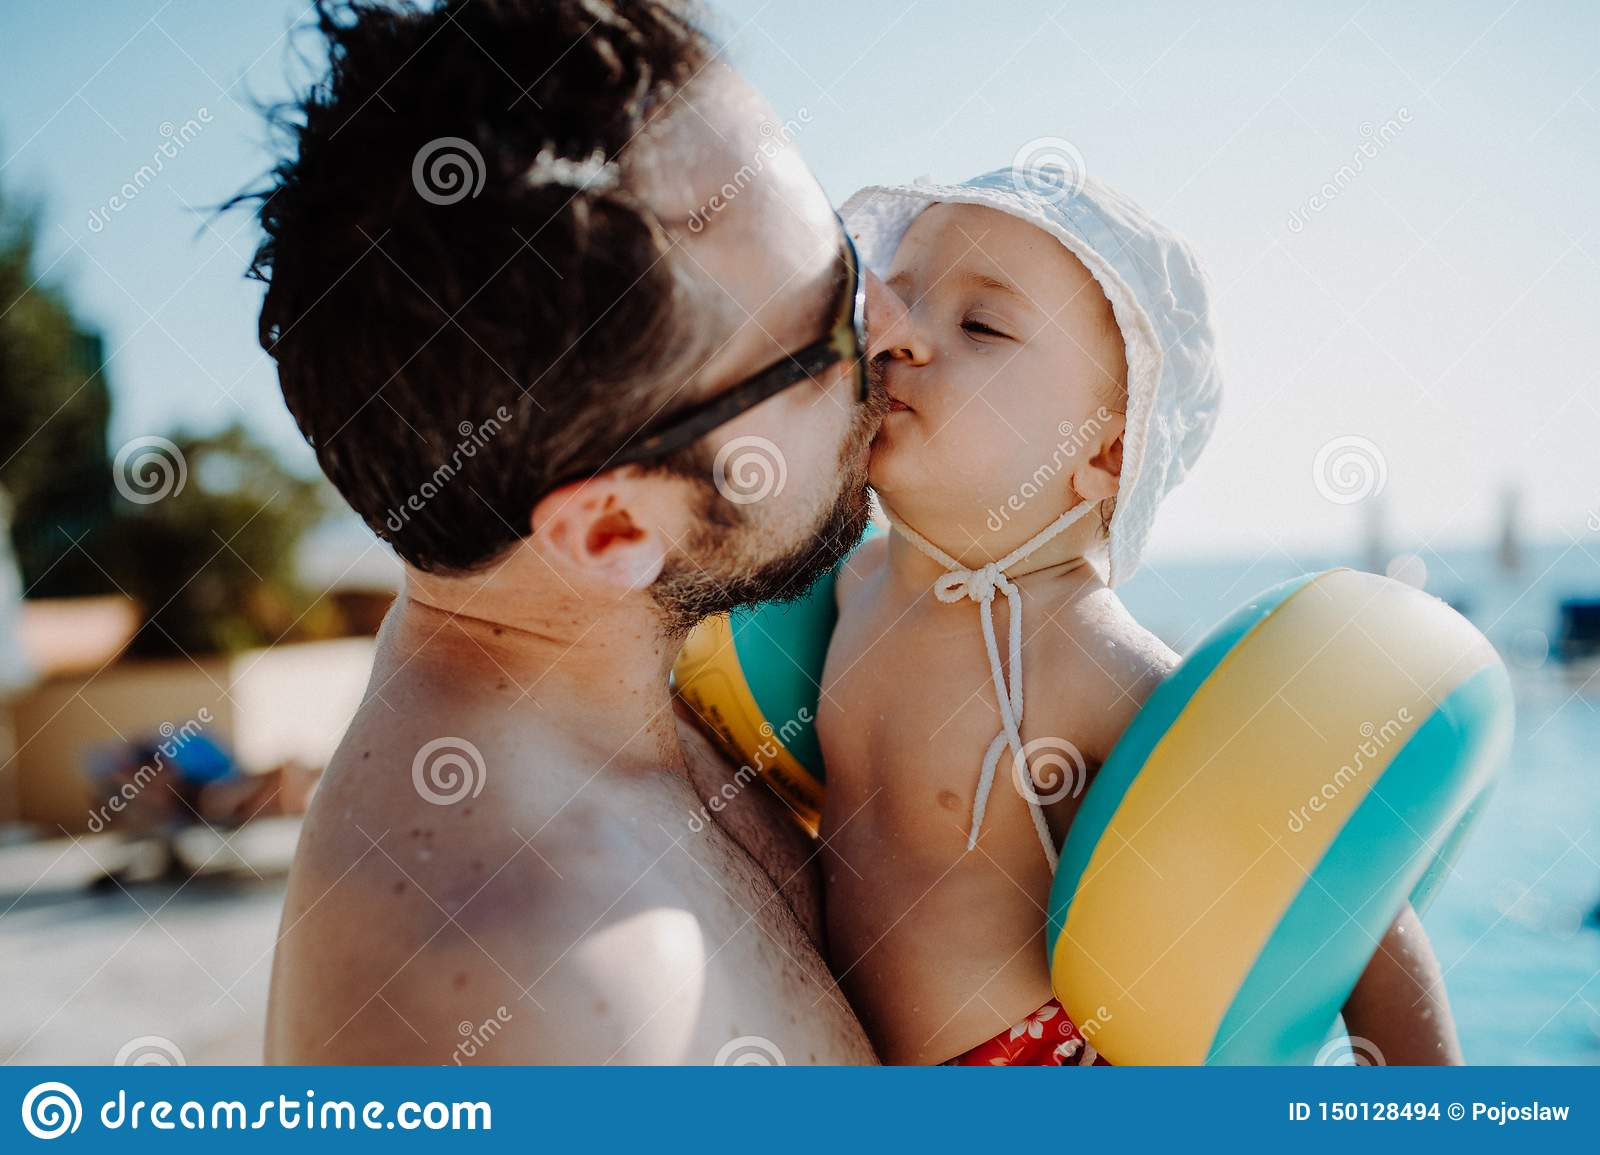 Father with small child with armbands standing by swimming pool on summer holiday.